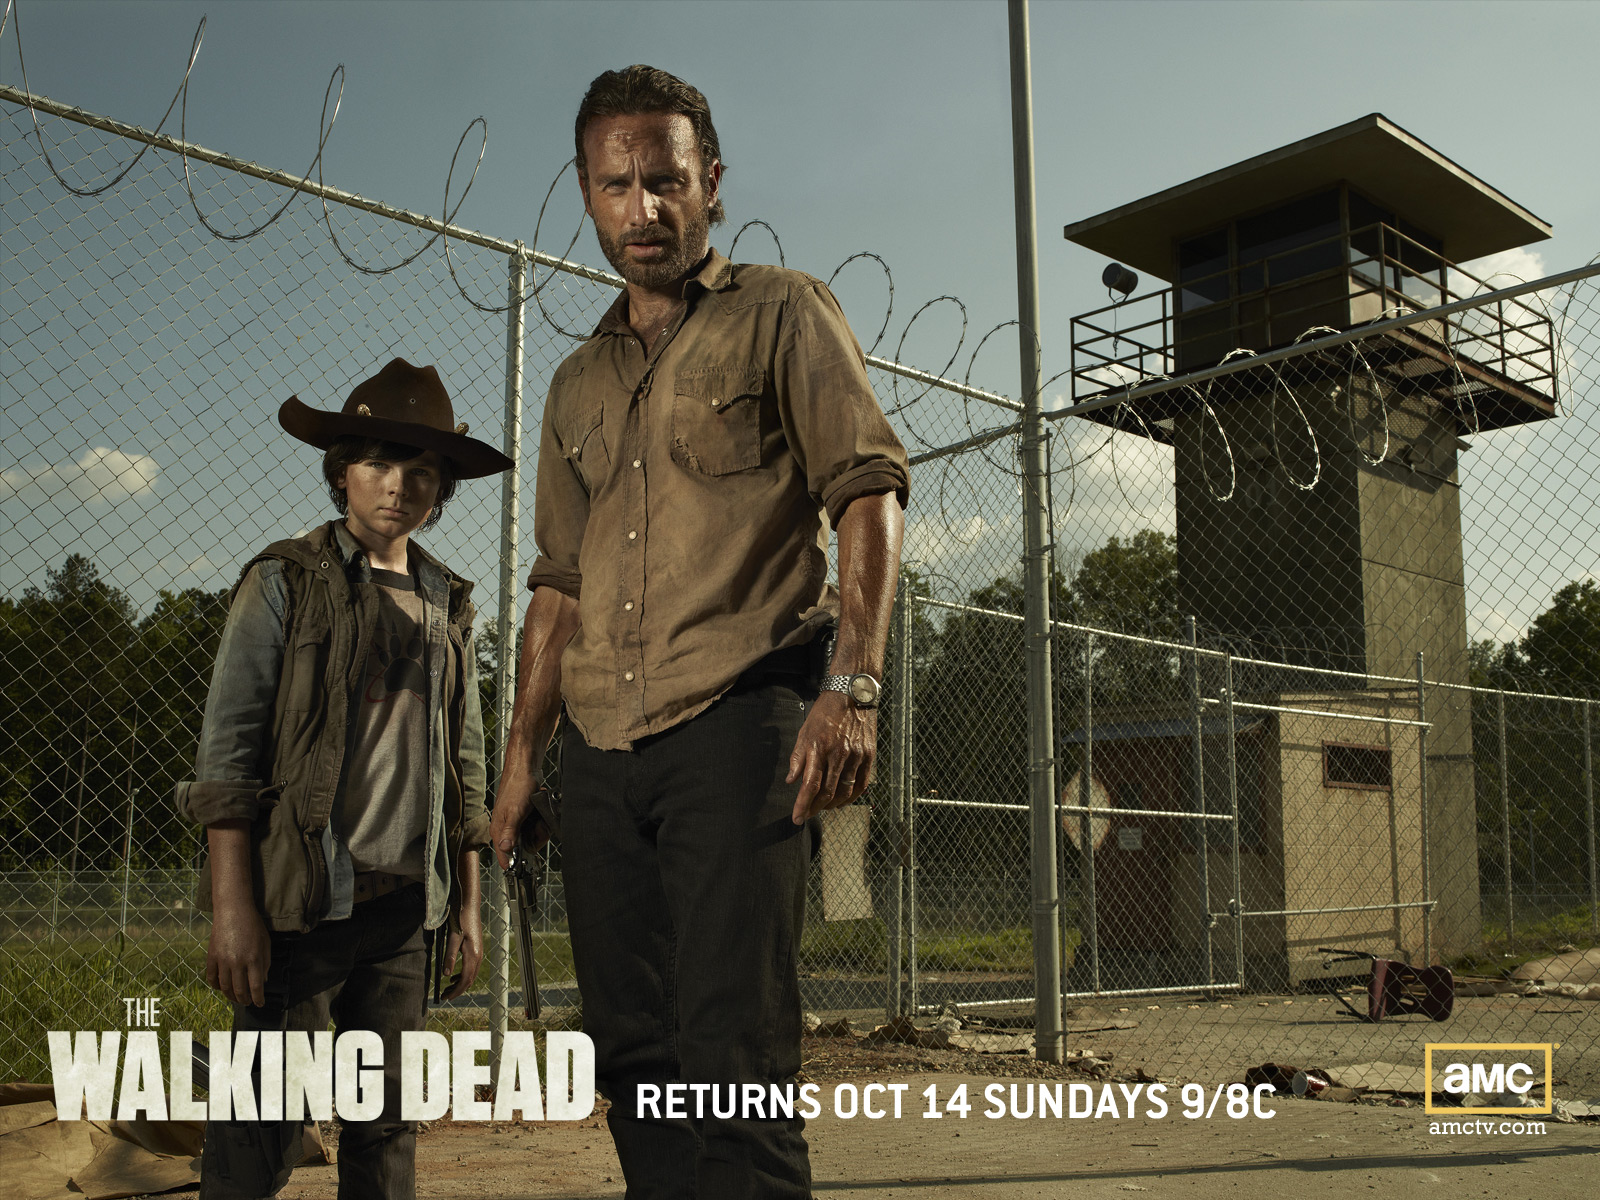 Rick And Carl Grimes At The Prison Wallpaper Background Image